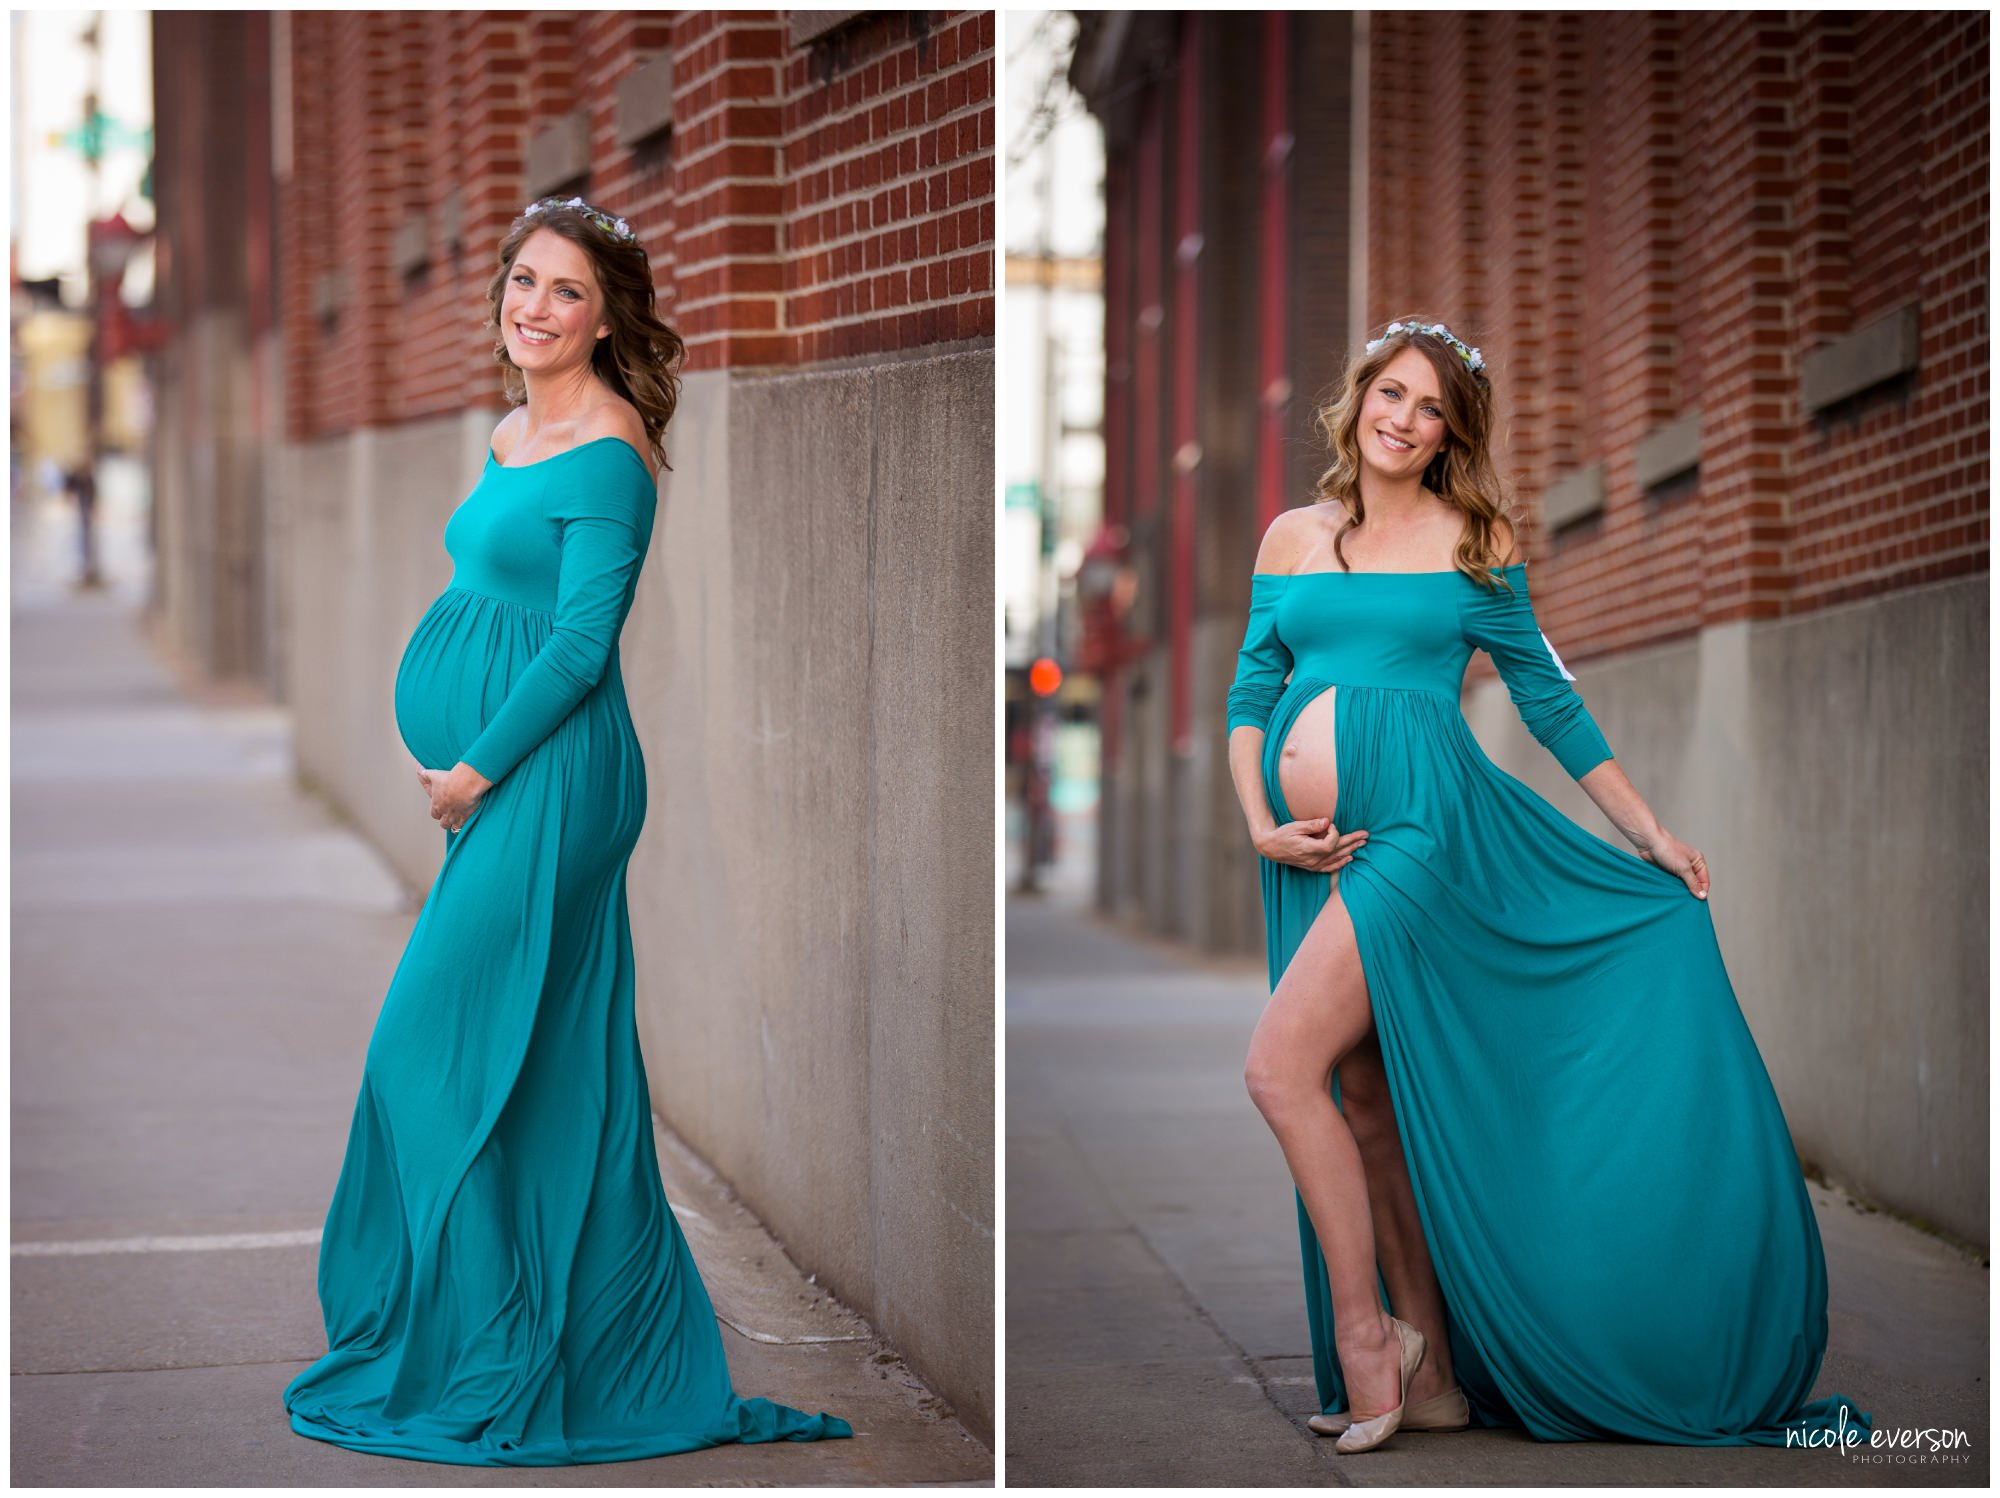 Tallahassee maternity pictures